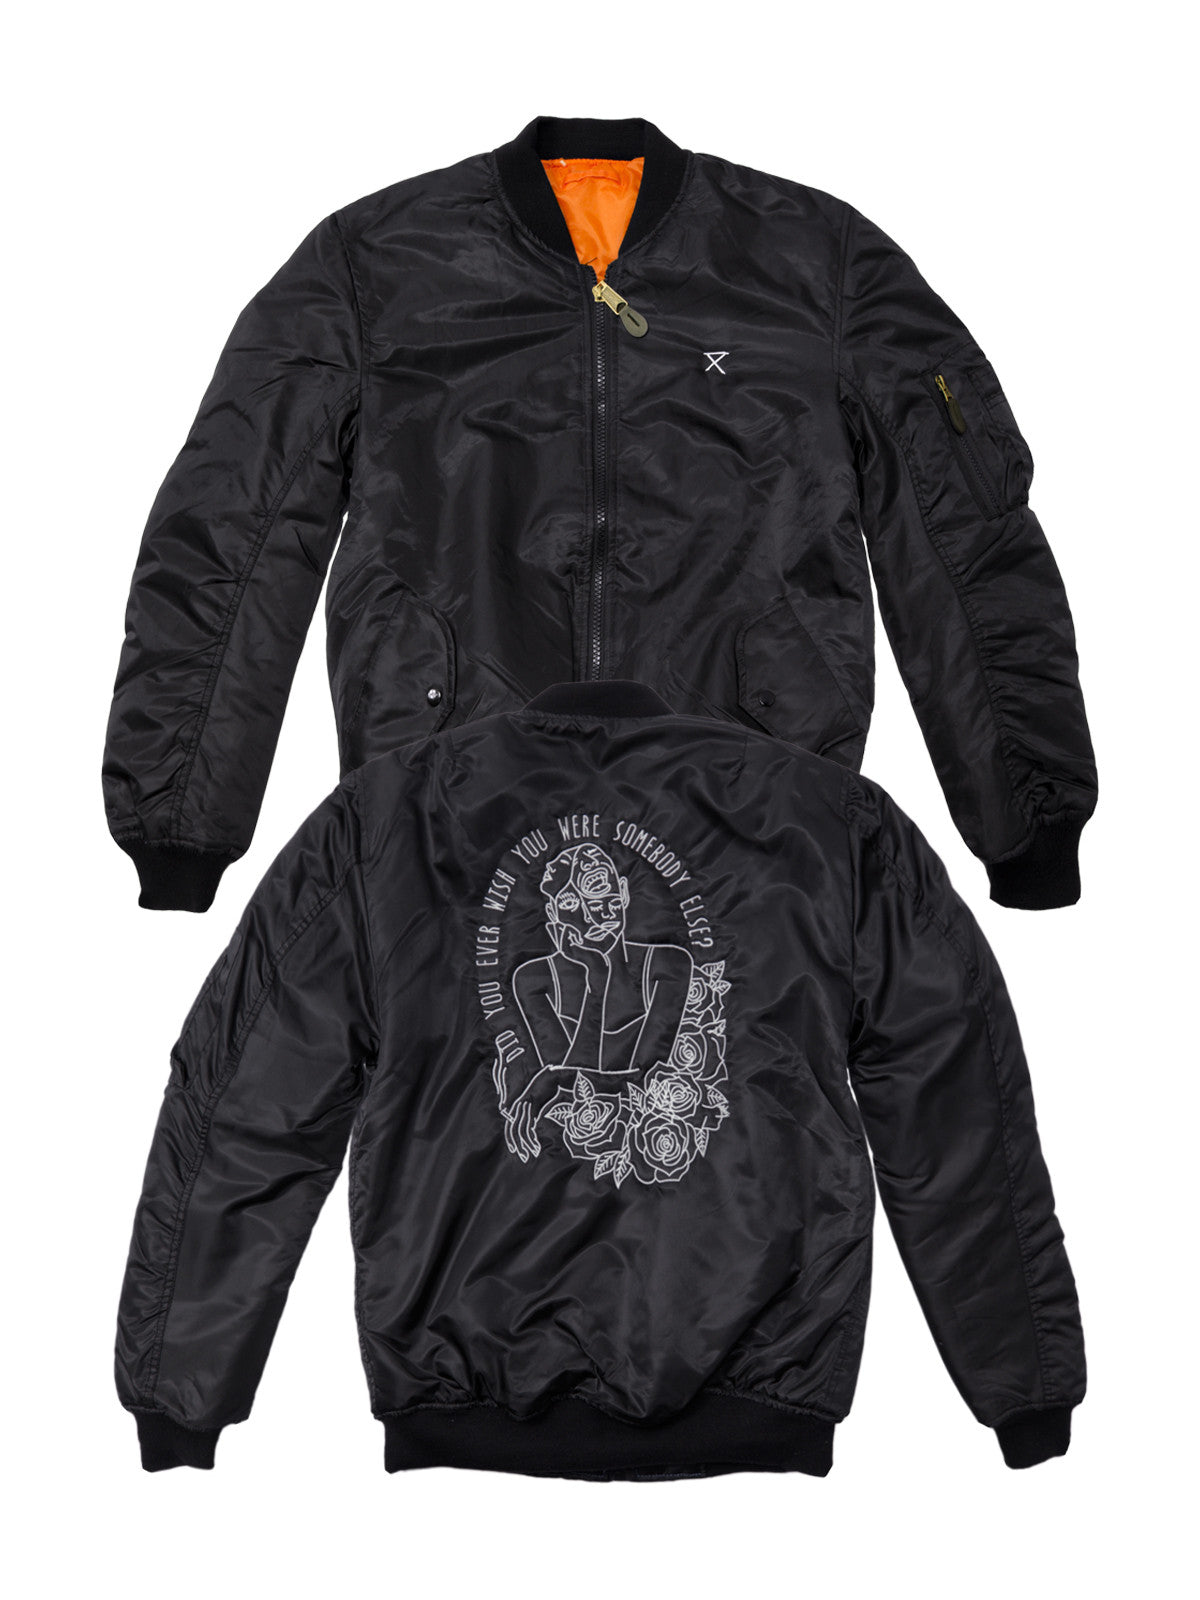 Circa Survive - Bomber Jacket - Merch Limited